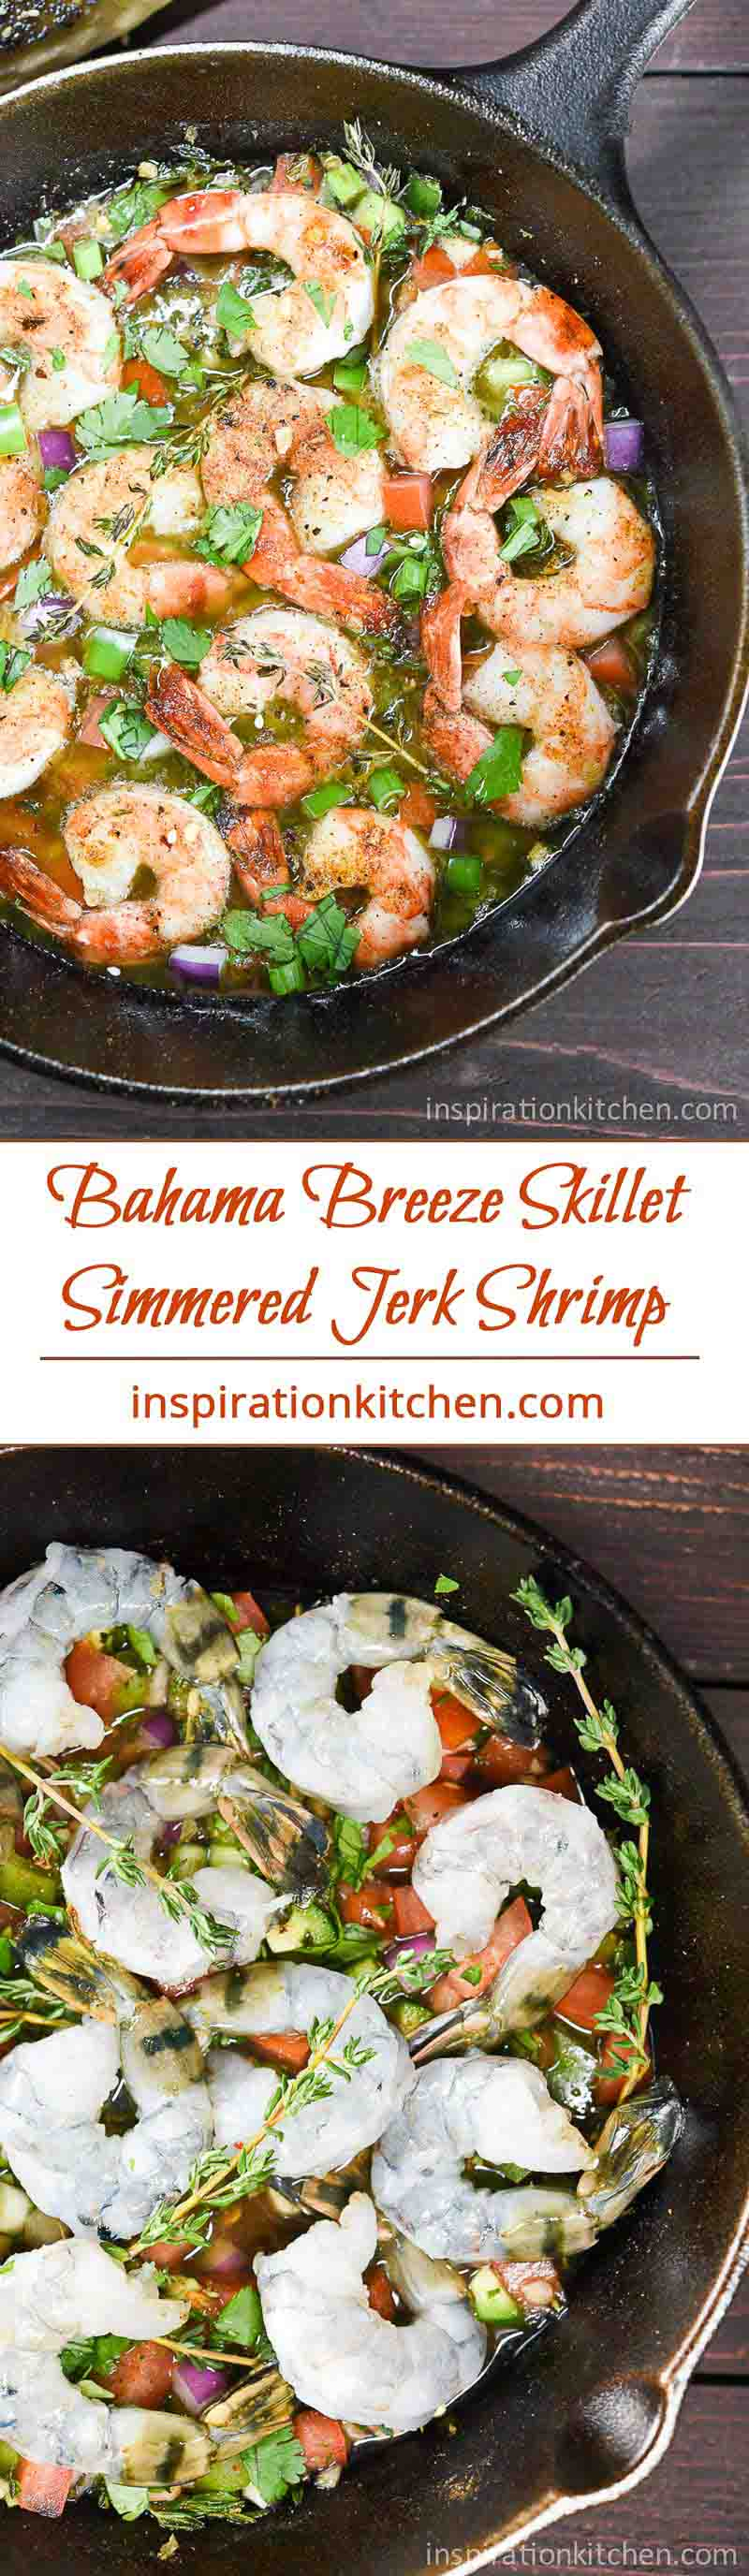 Bahama Breeze Skillet Simmered Jerk Shrimp Collage | Inspiration Kitchen